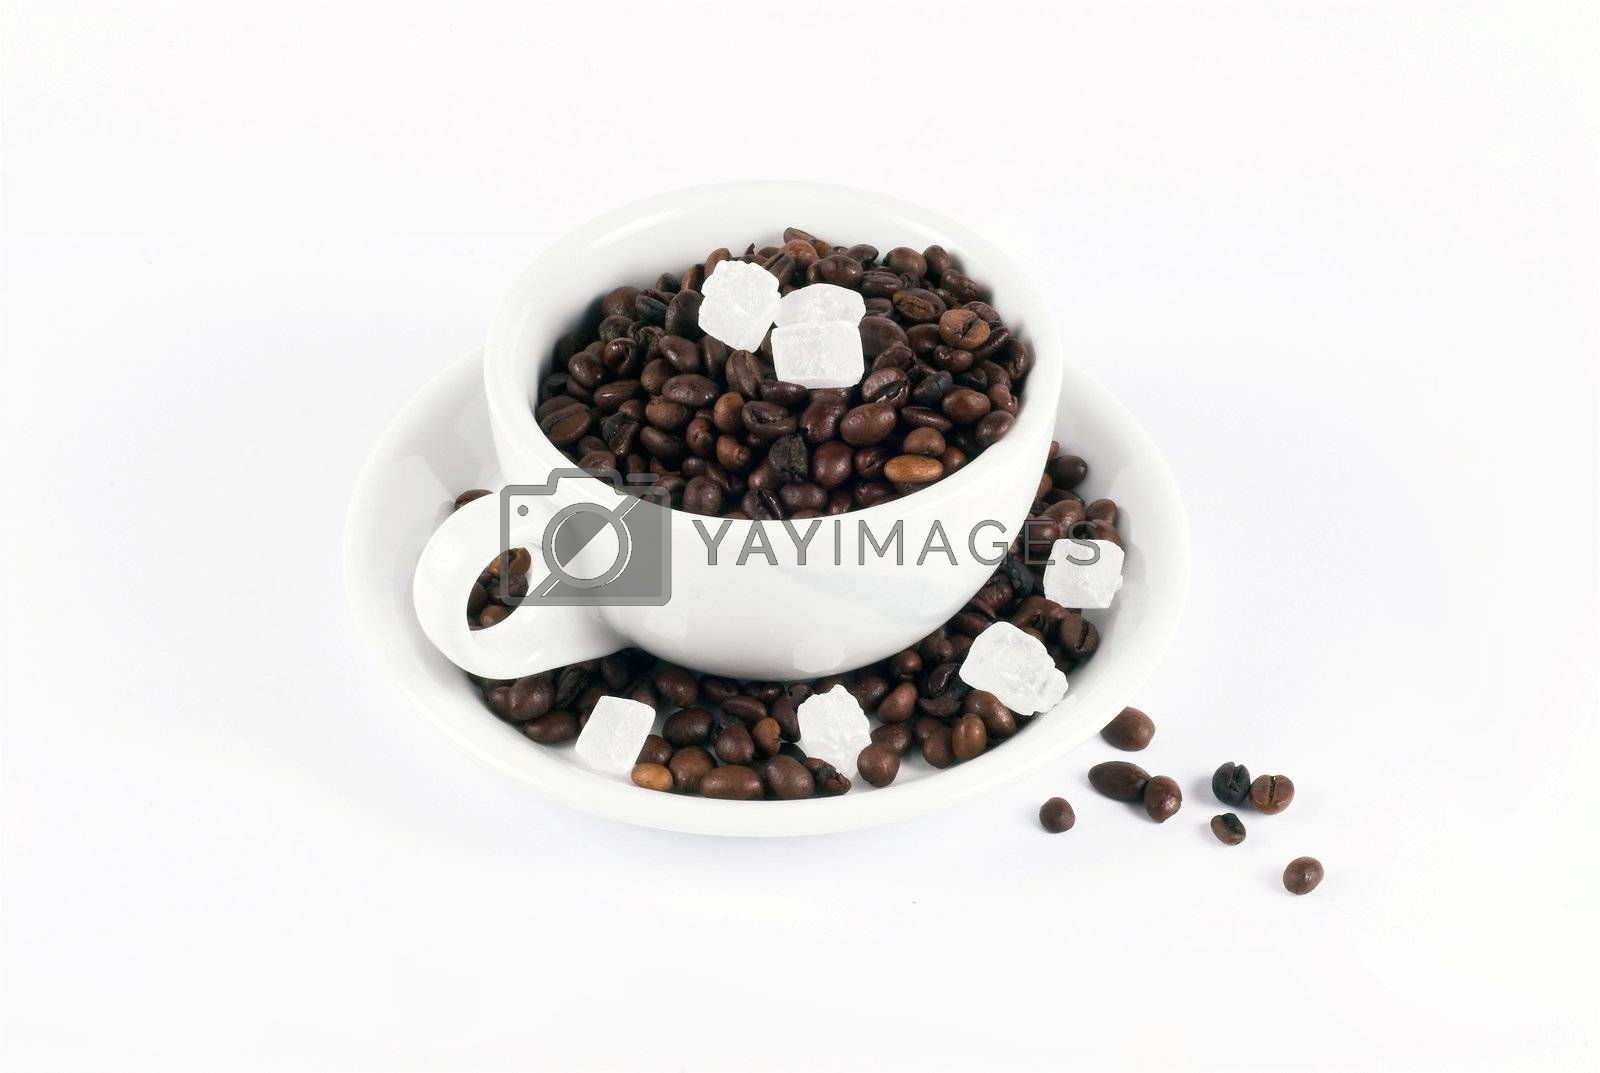 coffe, coffee, cup, beans, brown, morning, simple, background, isolated, white, color, full, business, drink, meeting, break, pause, taste, start, power, energy, food, nutrition, closeup, addiction, brew, cappuccino, cuisine, java, espresso, mug, ground, bar, cafe, boost, day, black, leisure, smell, aroma, brewed, flavor, wake, columbia, roasted, grain, italy, italian, seeds, stimulant,